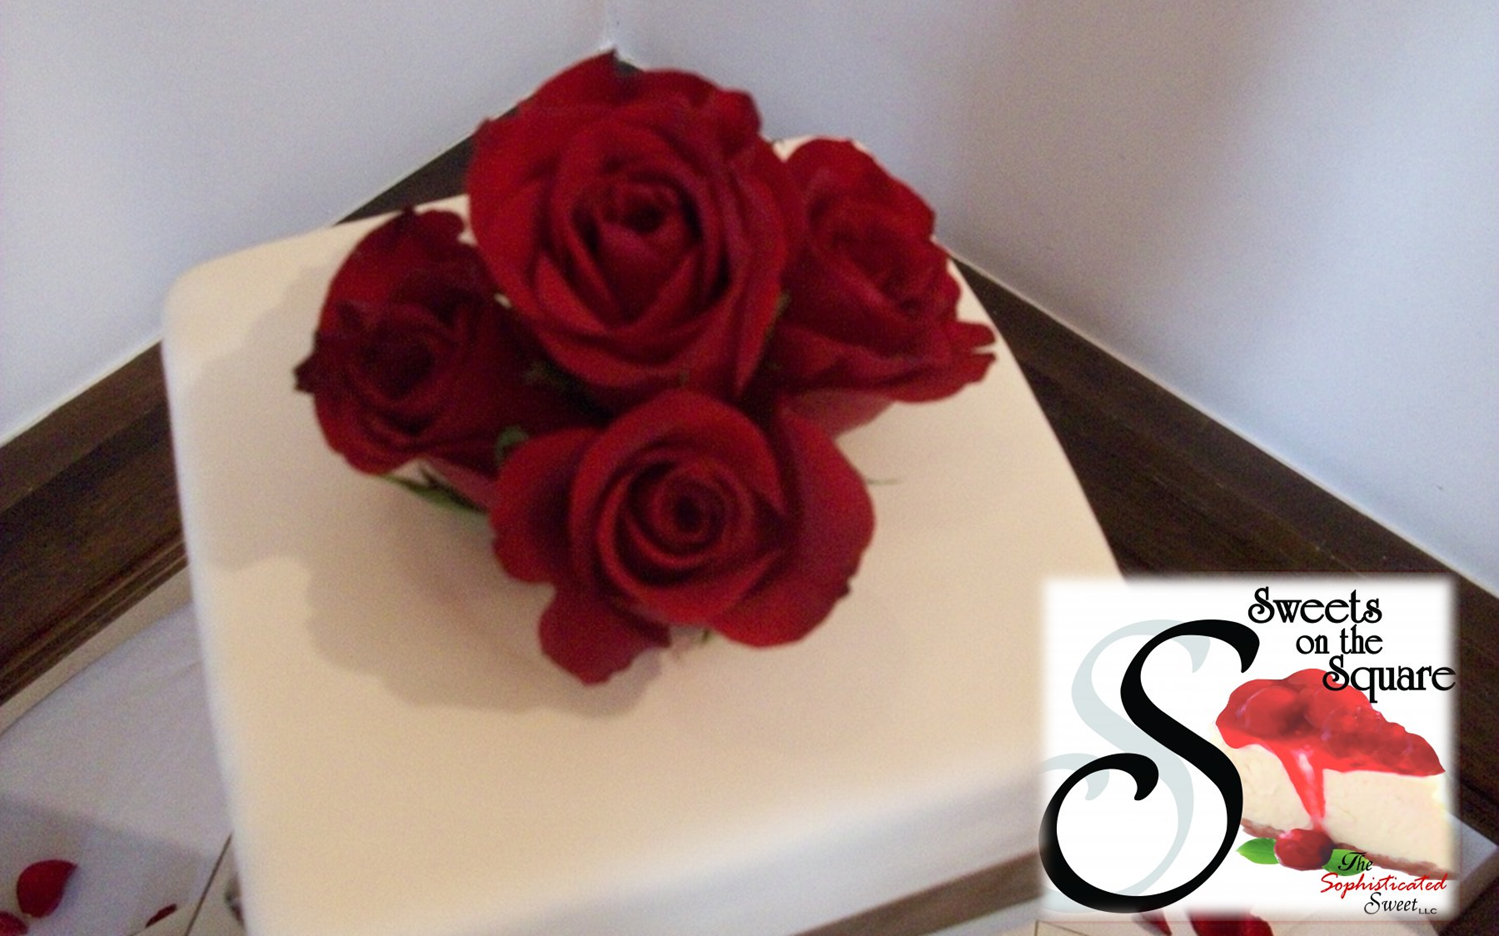 Classic white wedding cake topped with roses. Made from scratch just like everything else! - Sweets on the Square in Lawrenceville, GA